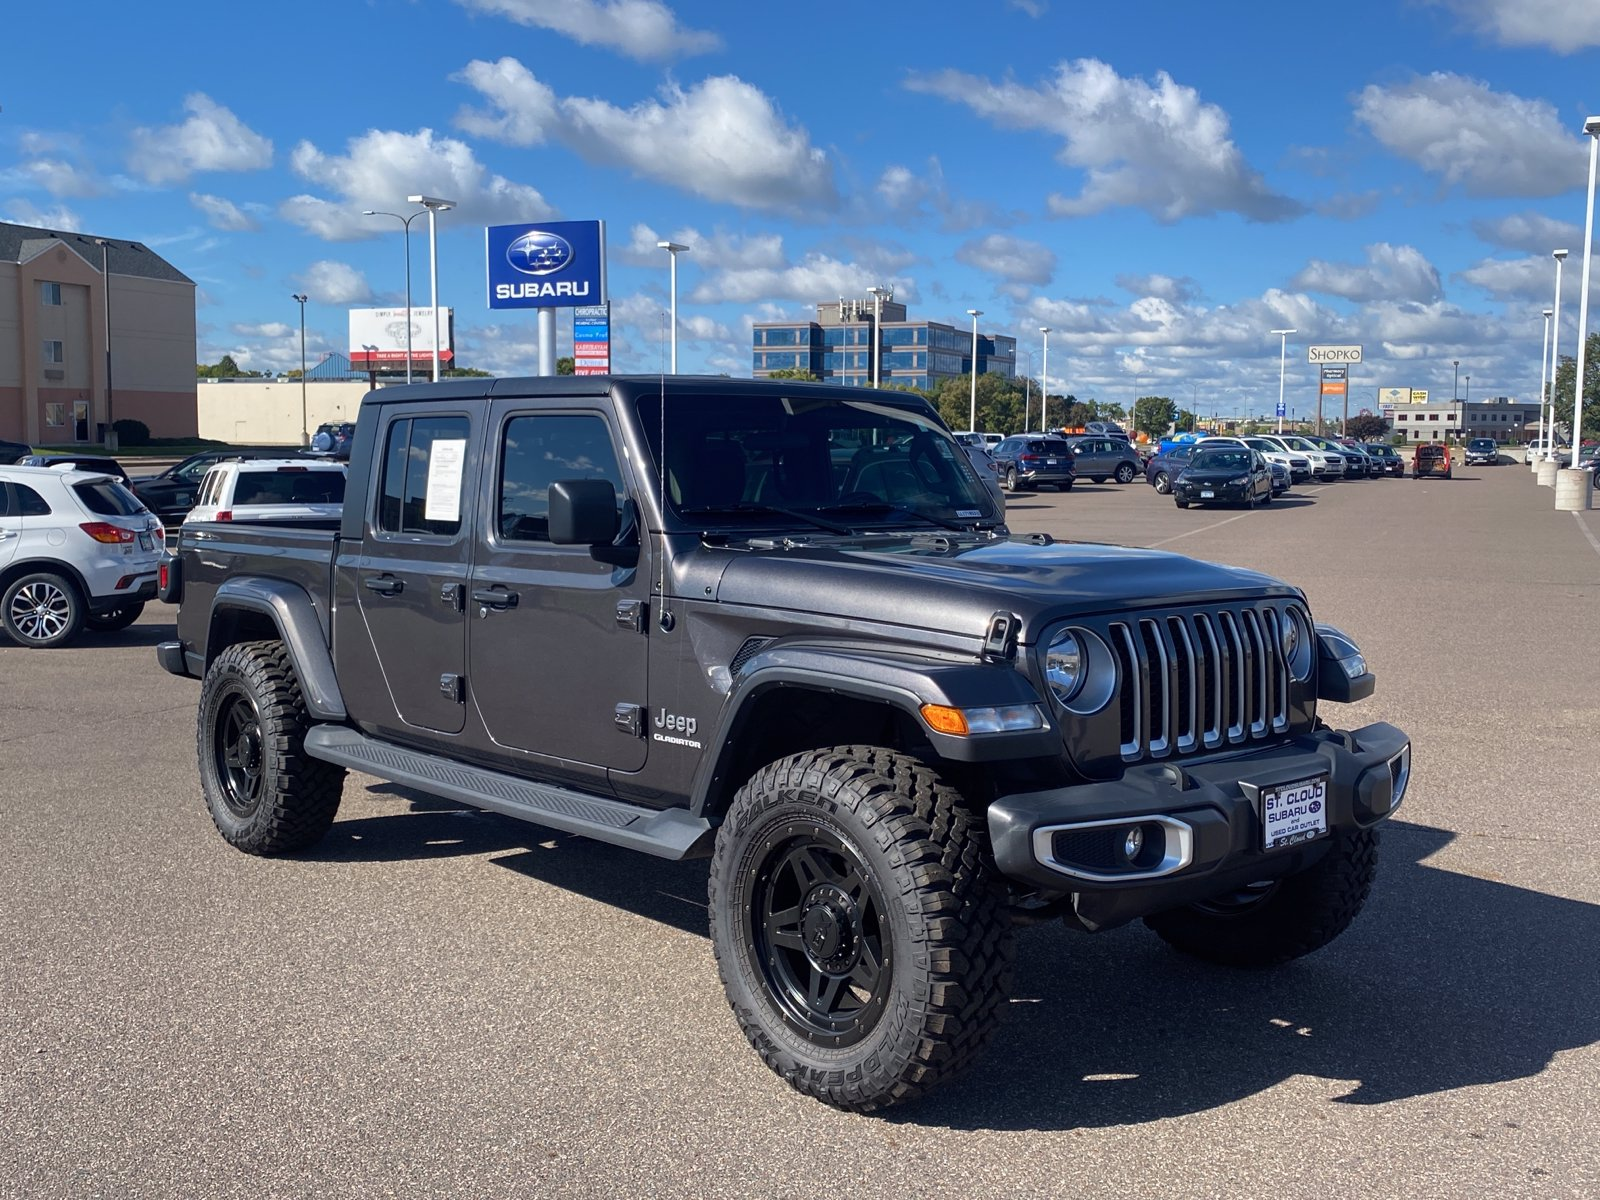 Used 2020 Jeep Gladiator Overland with VIN 1C6HJTFG6LL171853 for sale in Saint Cloud, Minnesota